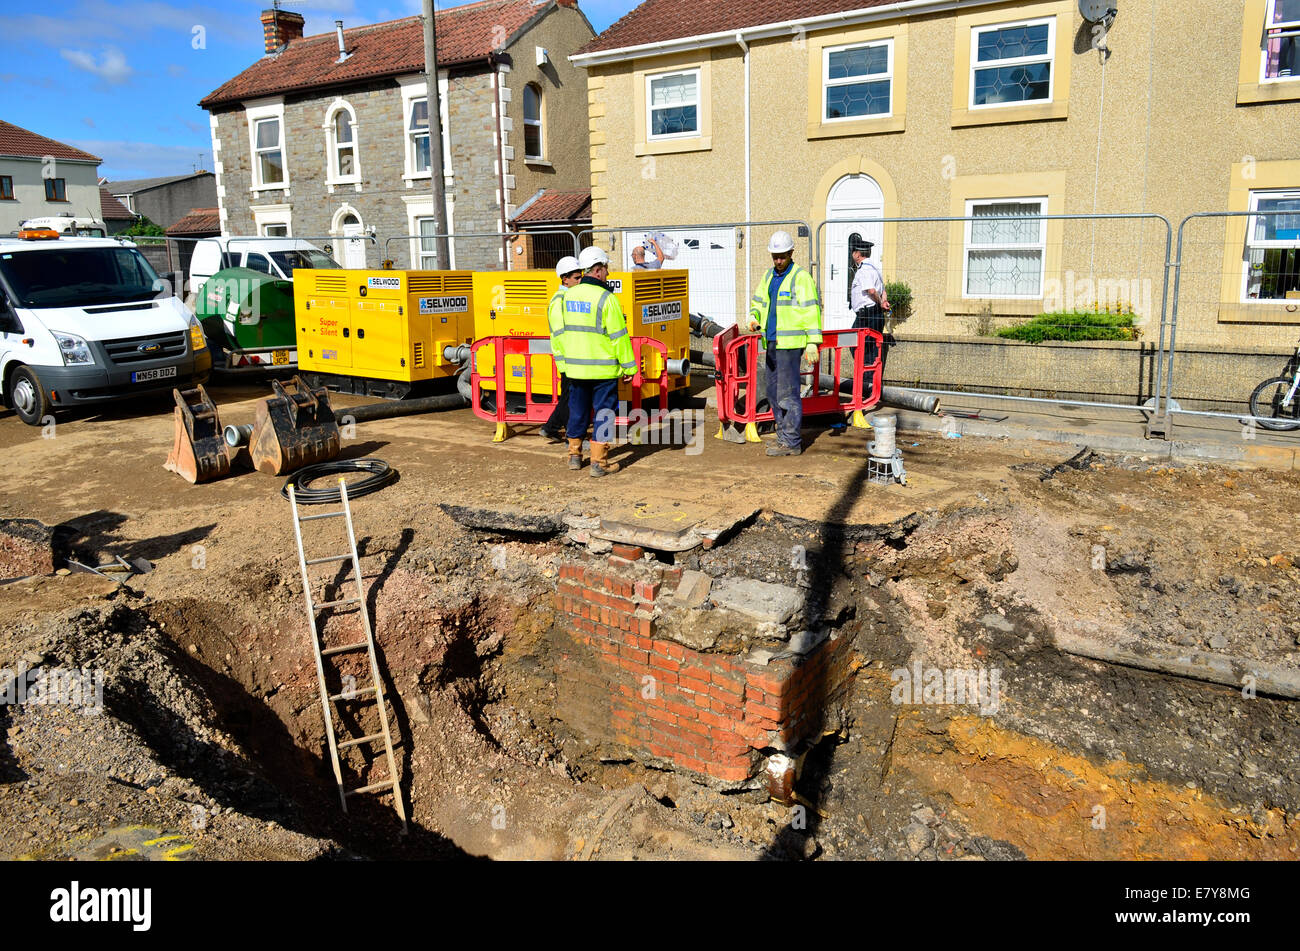 Bristol, UK. 26th Sep, 2014. Major Incident last night when a Water Mains blew up in a street in the South Gloucestershire - Stock Image